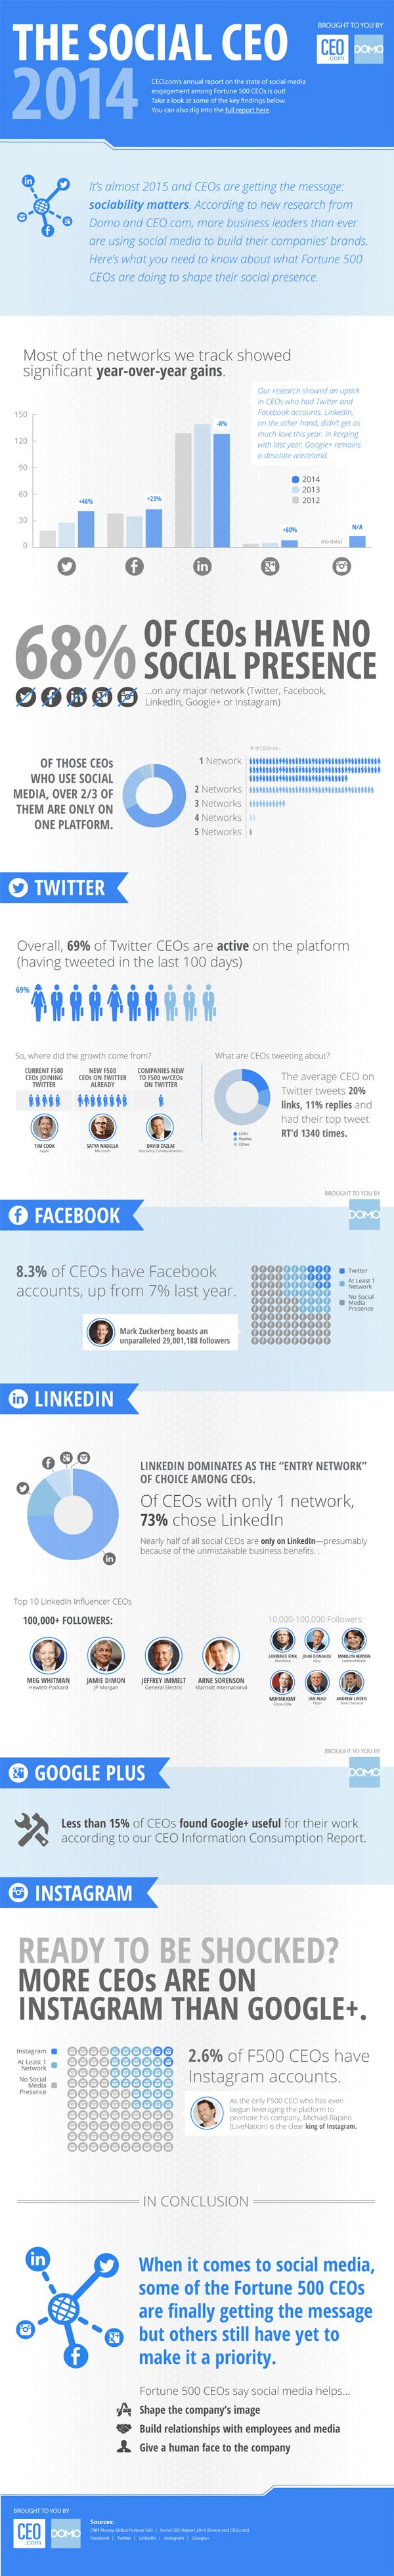 The Social CEO 2014: 68% of CEOs Have No Social Presence (#Infographic)